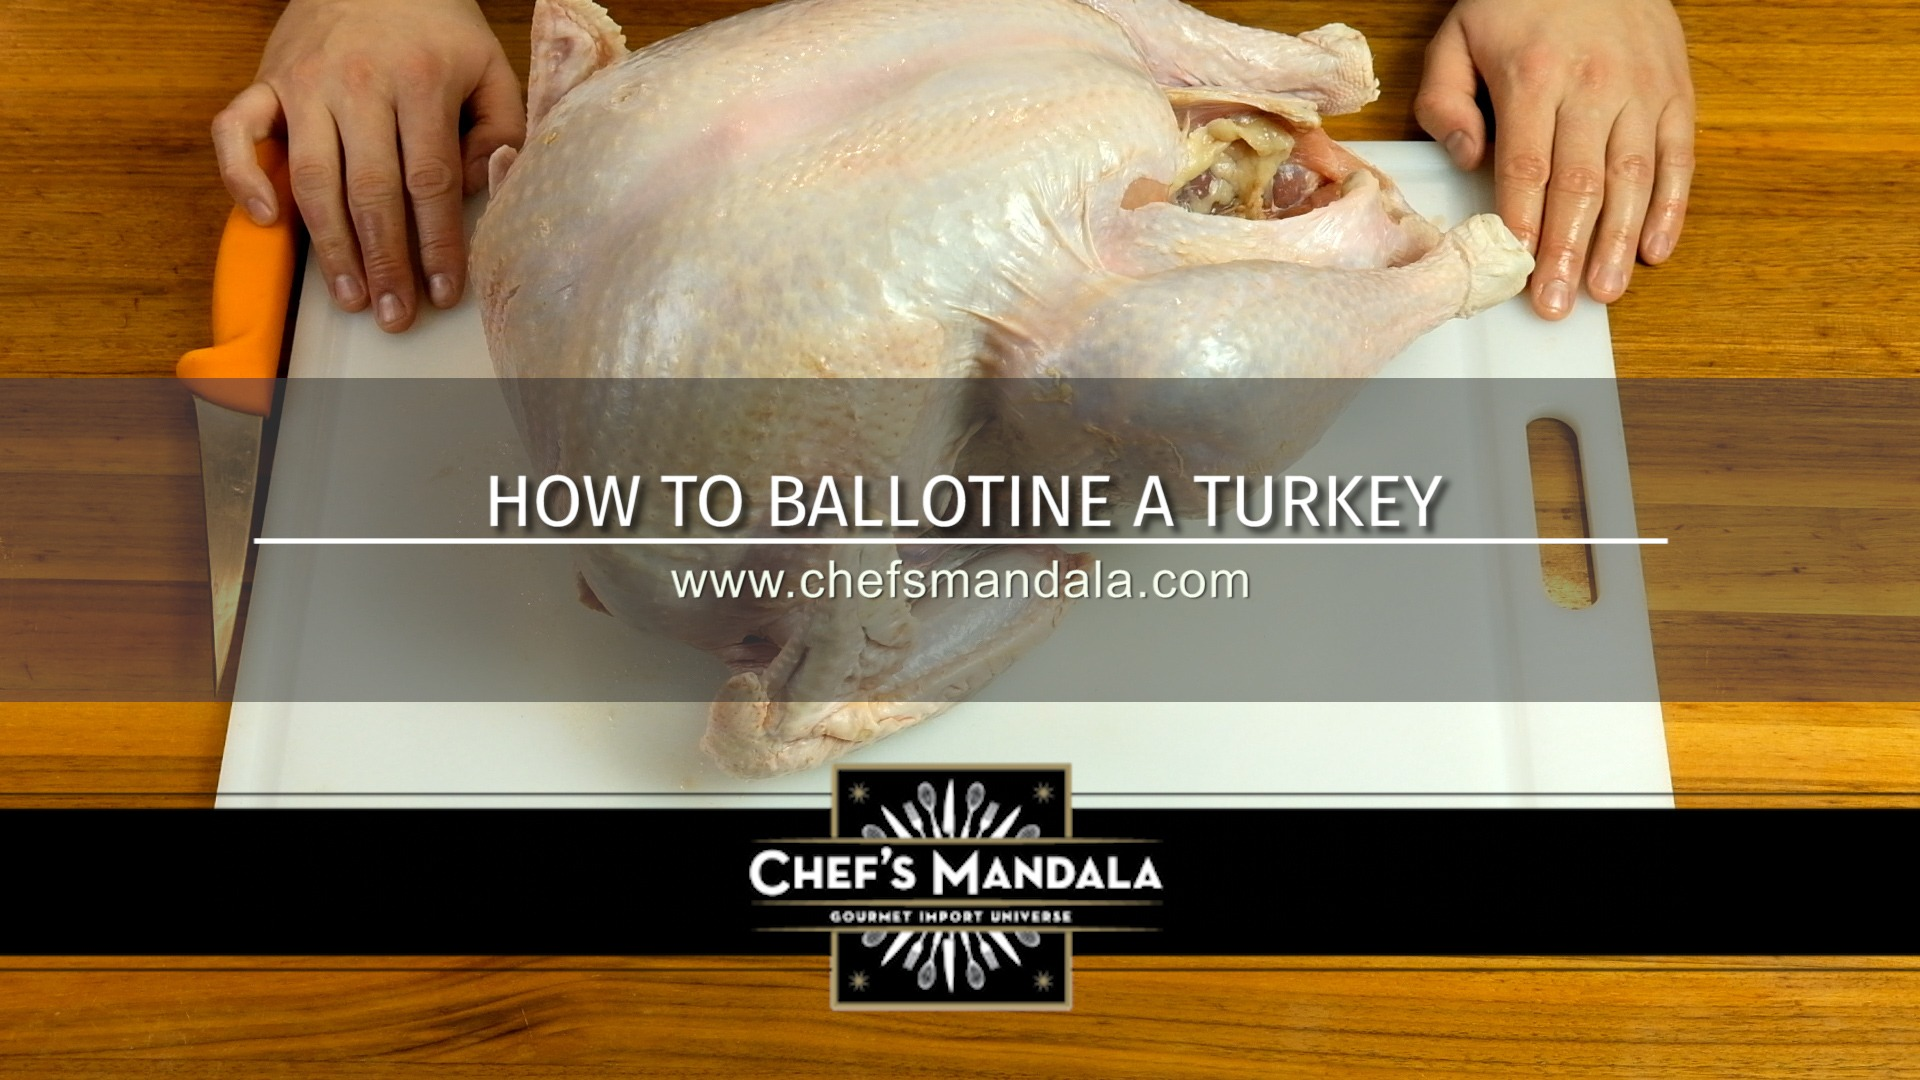 How to ballotine a turkey